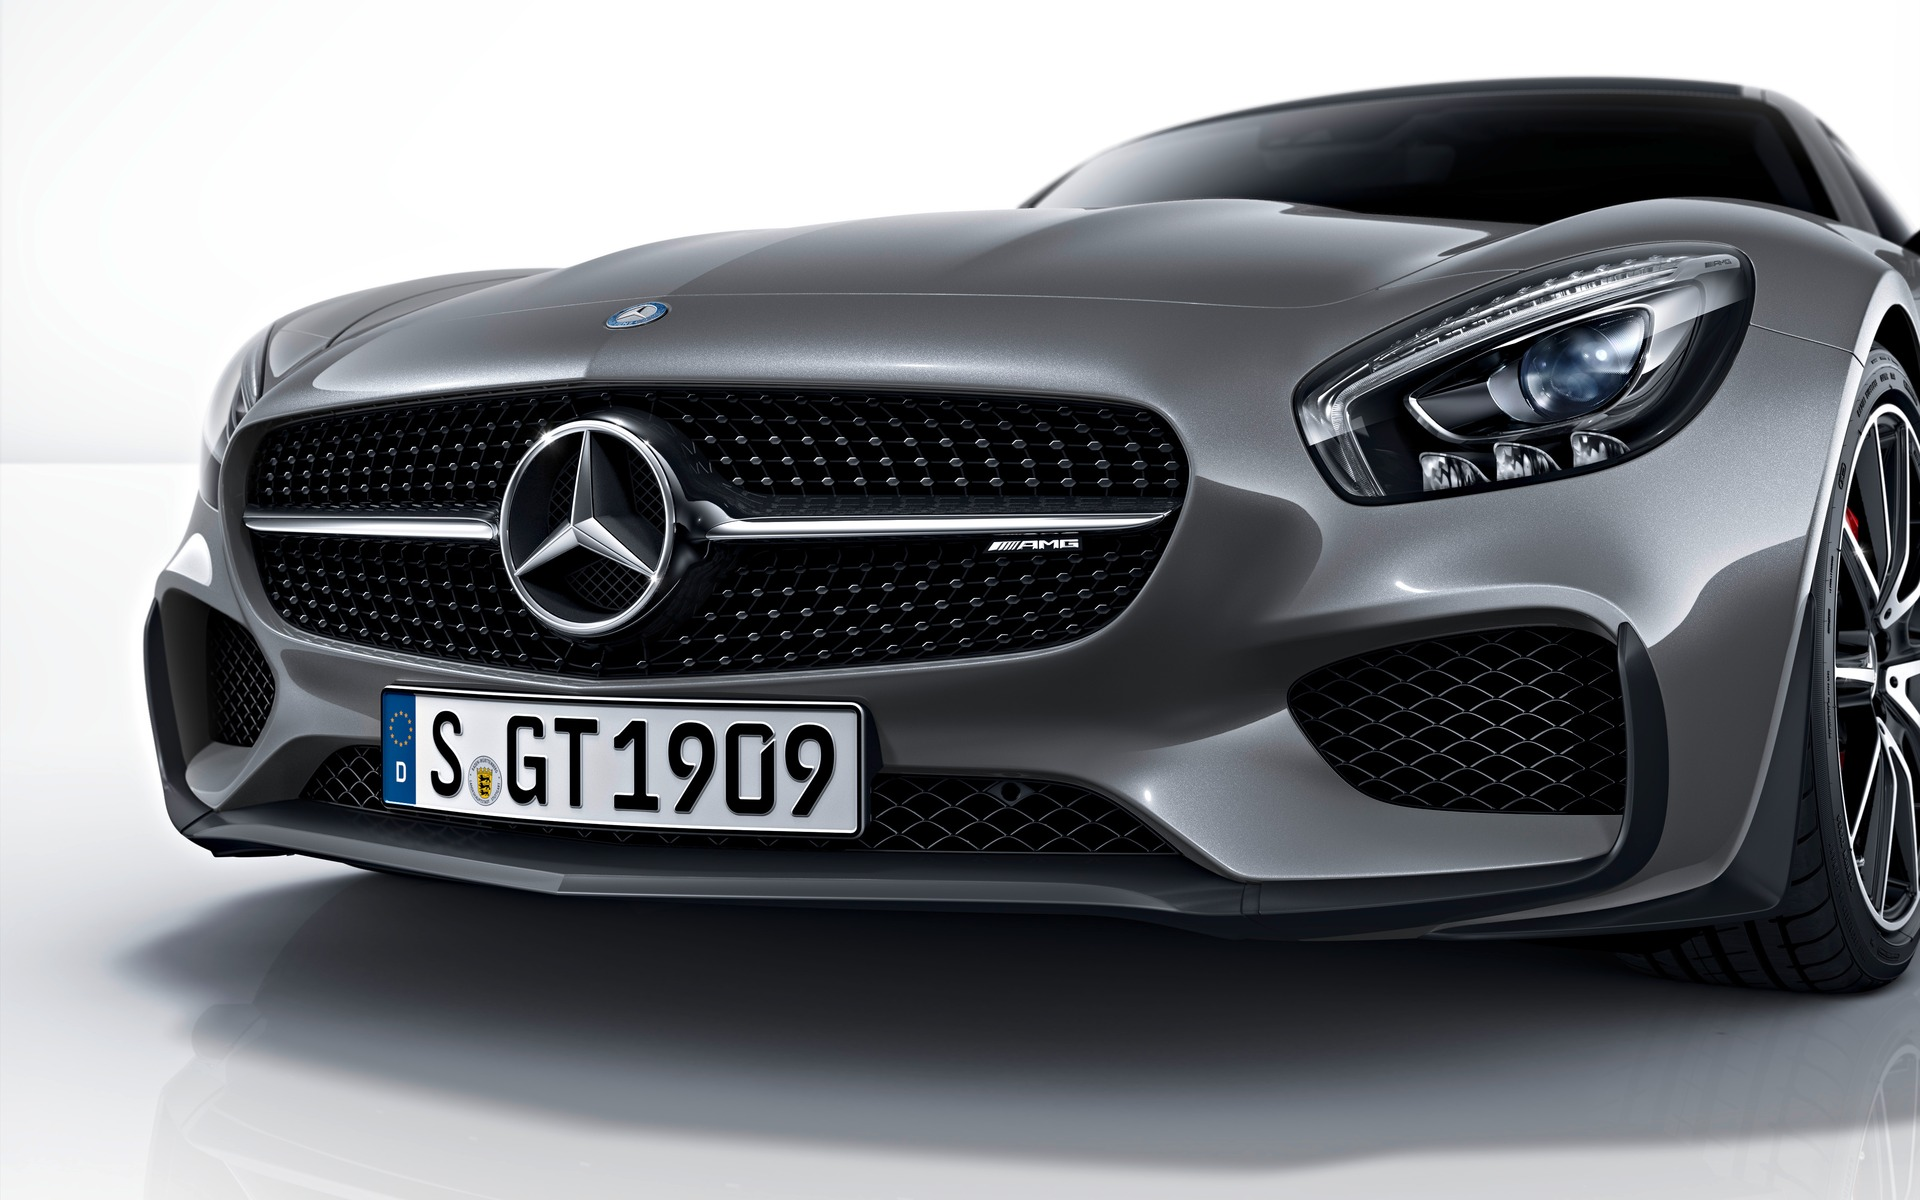 Mercedes Amg Mercedes Amg Gt S Edition 1 With Just 30 Units Who Are The Lucky